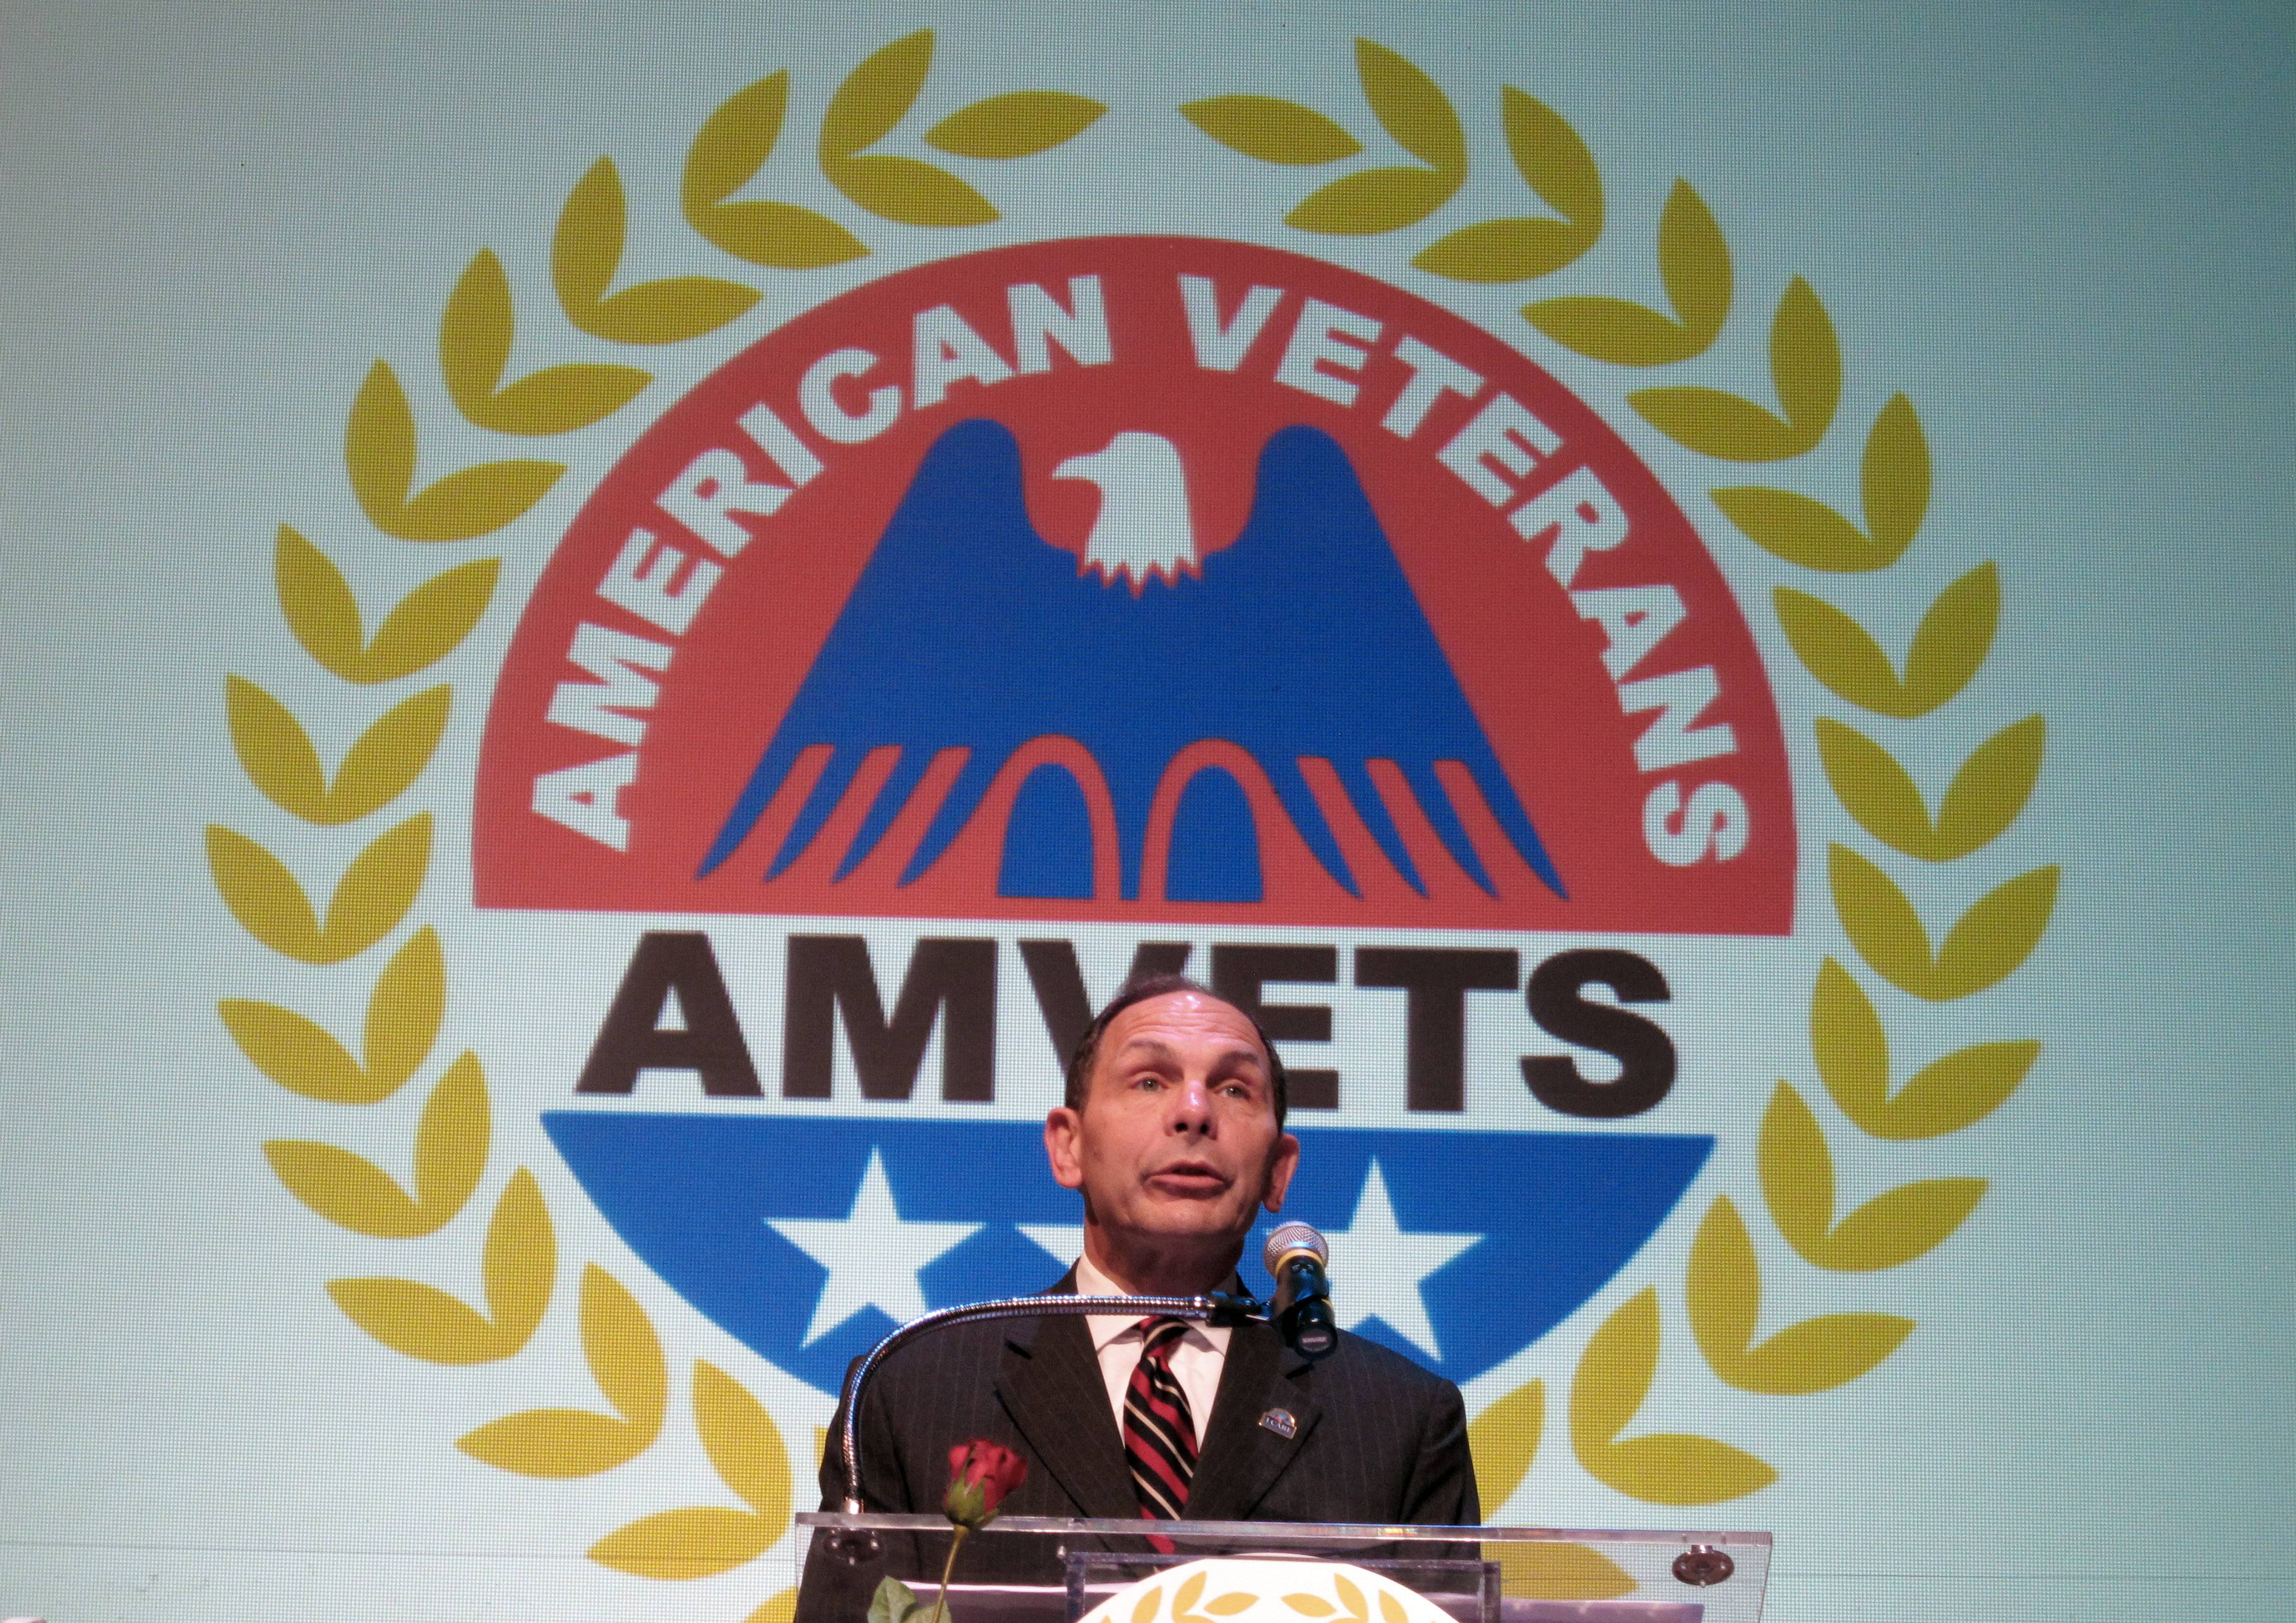 Secretary of Veterans Affairs Robert McDonald speaks to the American Veterans national convention Wednesday in Memphis, Tenn.